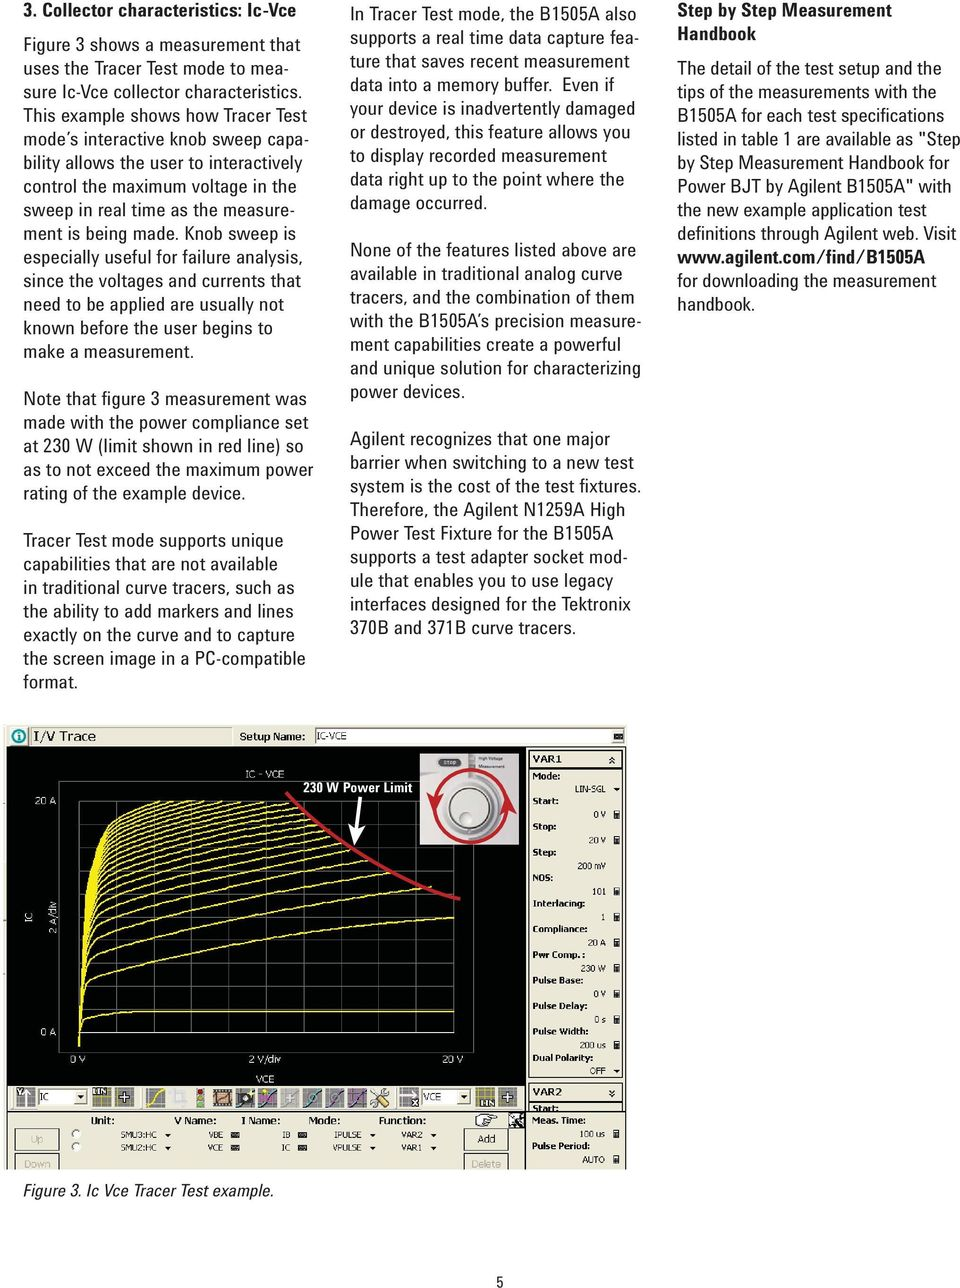 Measuring Power BJT Electrical Characteristics using the